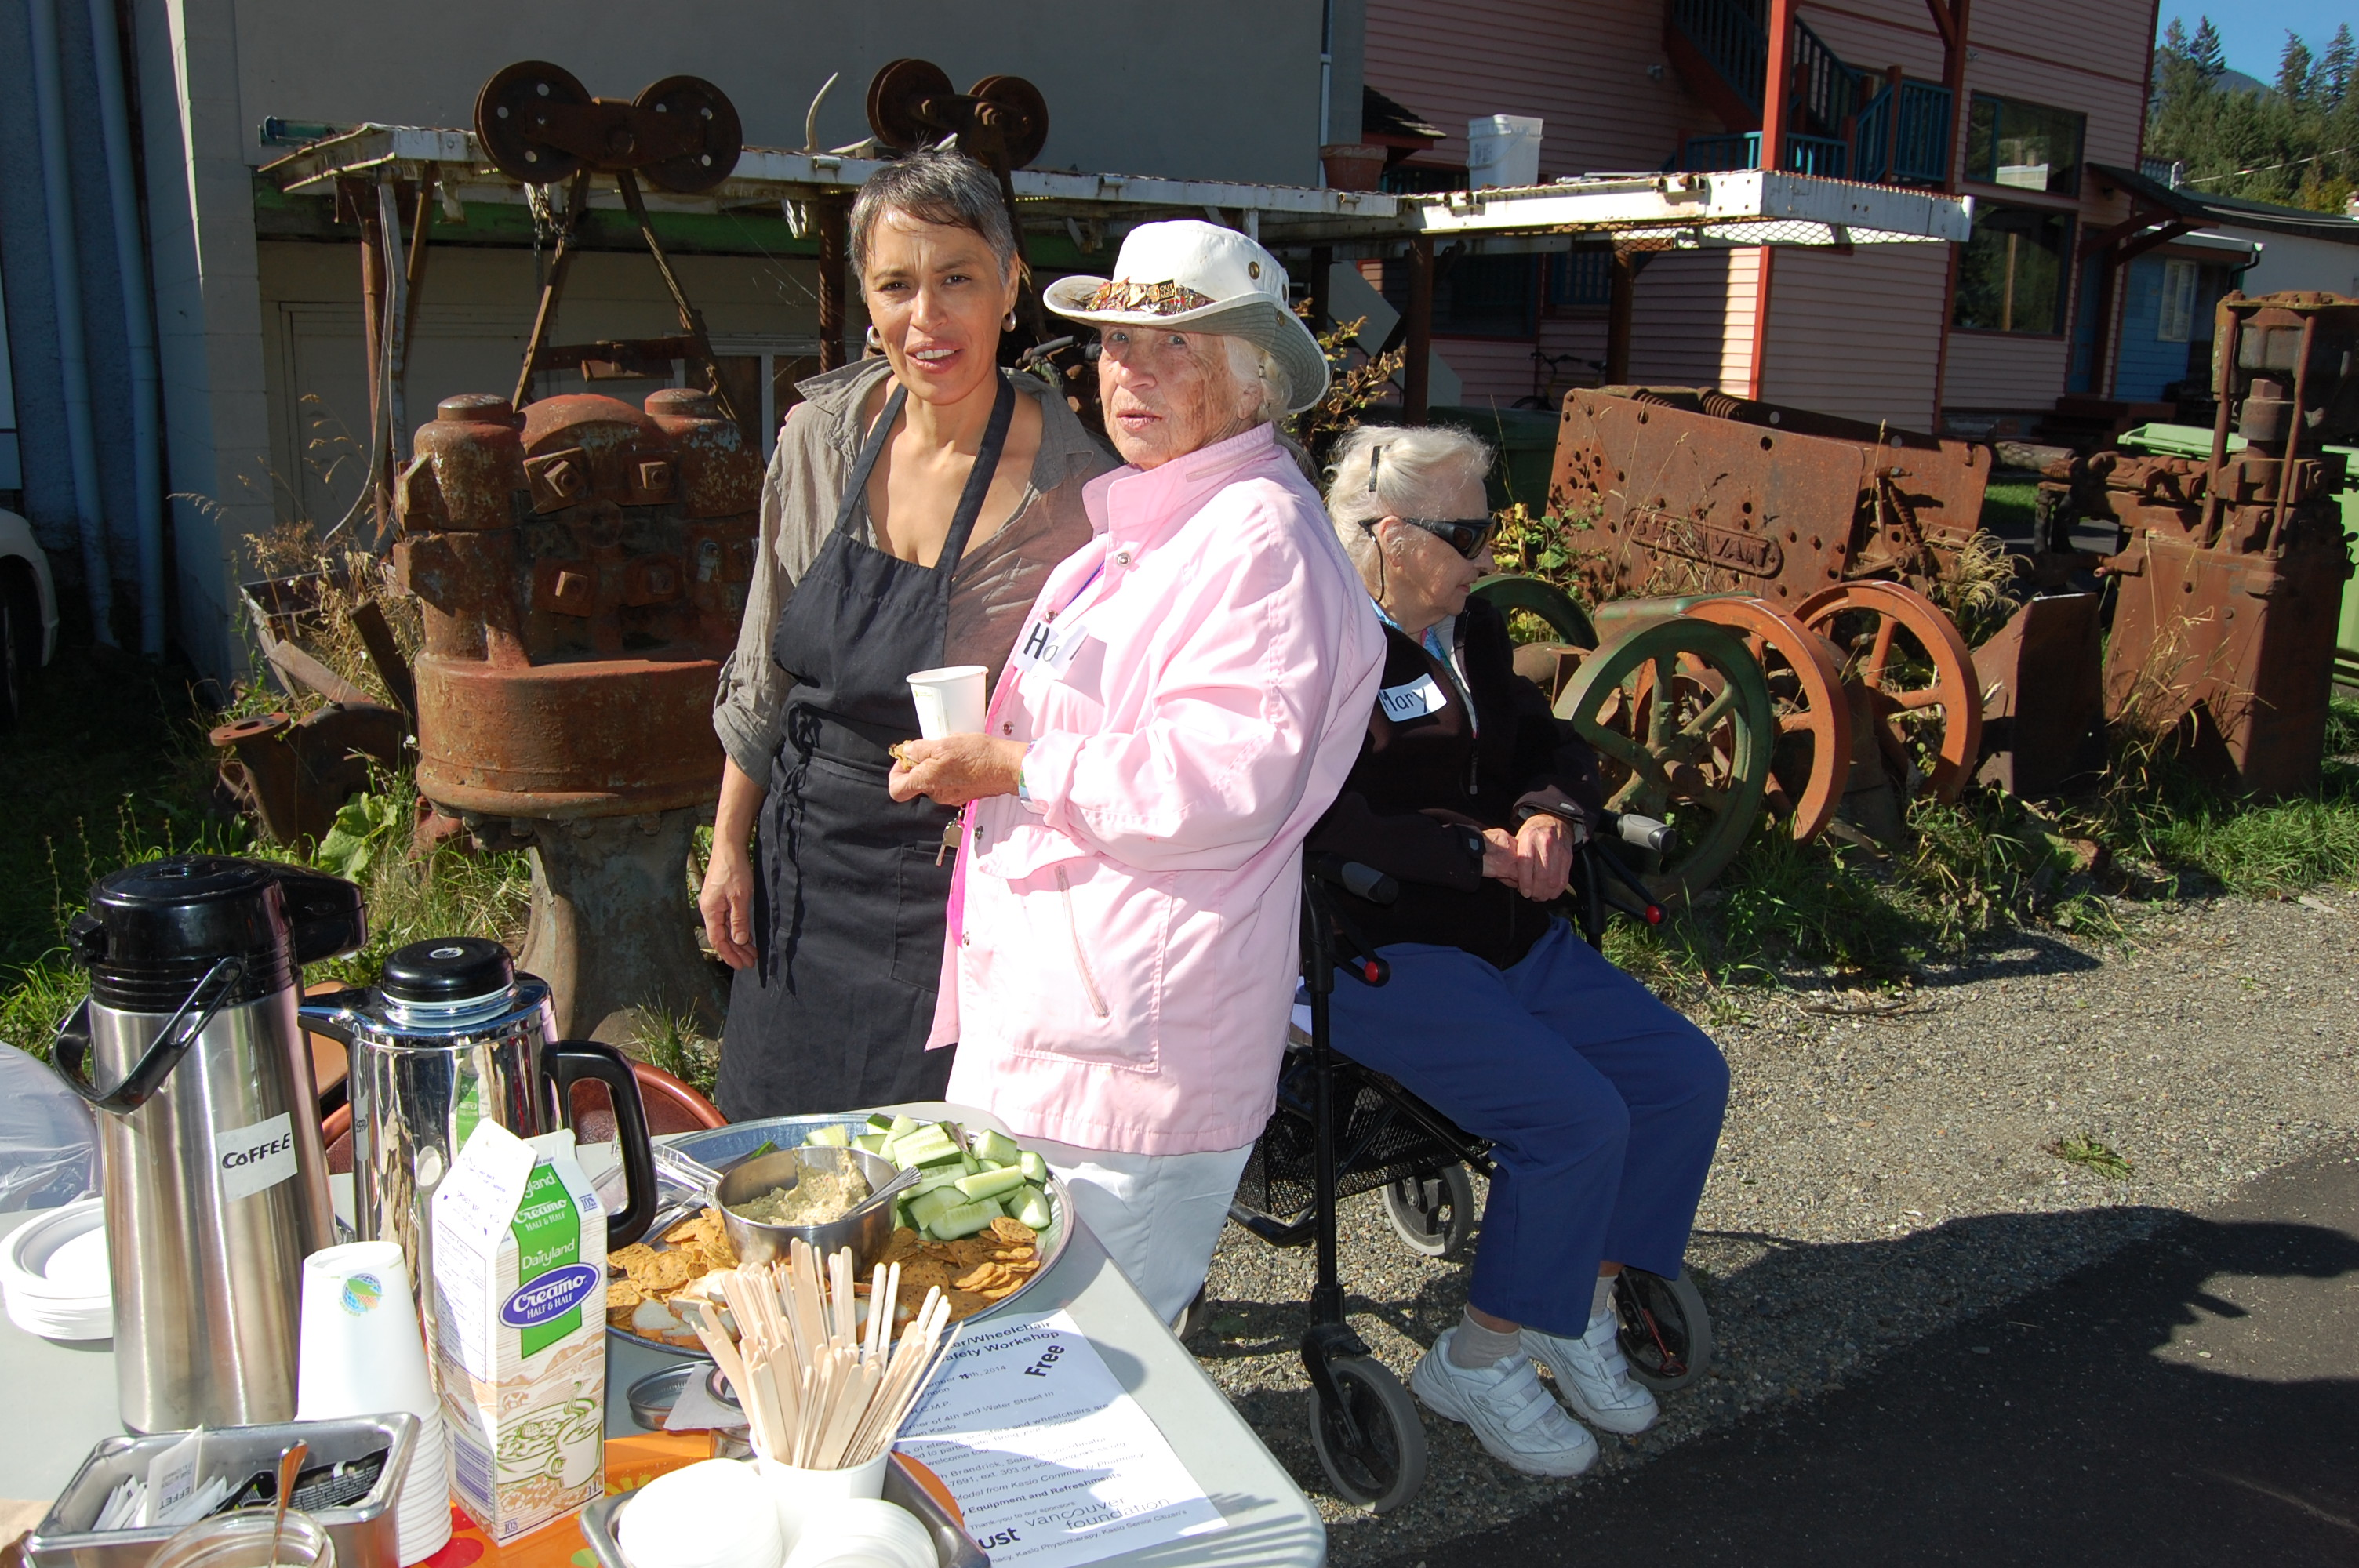 seniors enjoying snacks at a scooter safety event